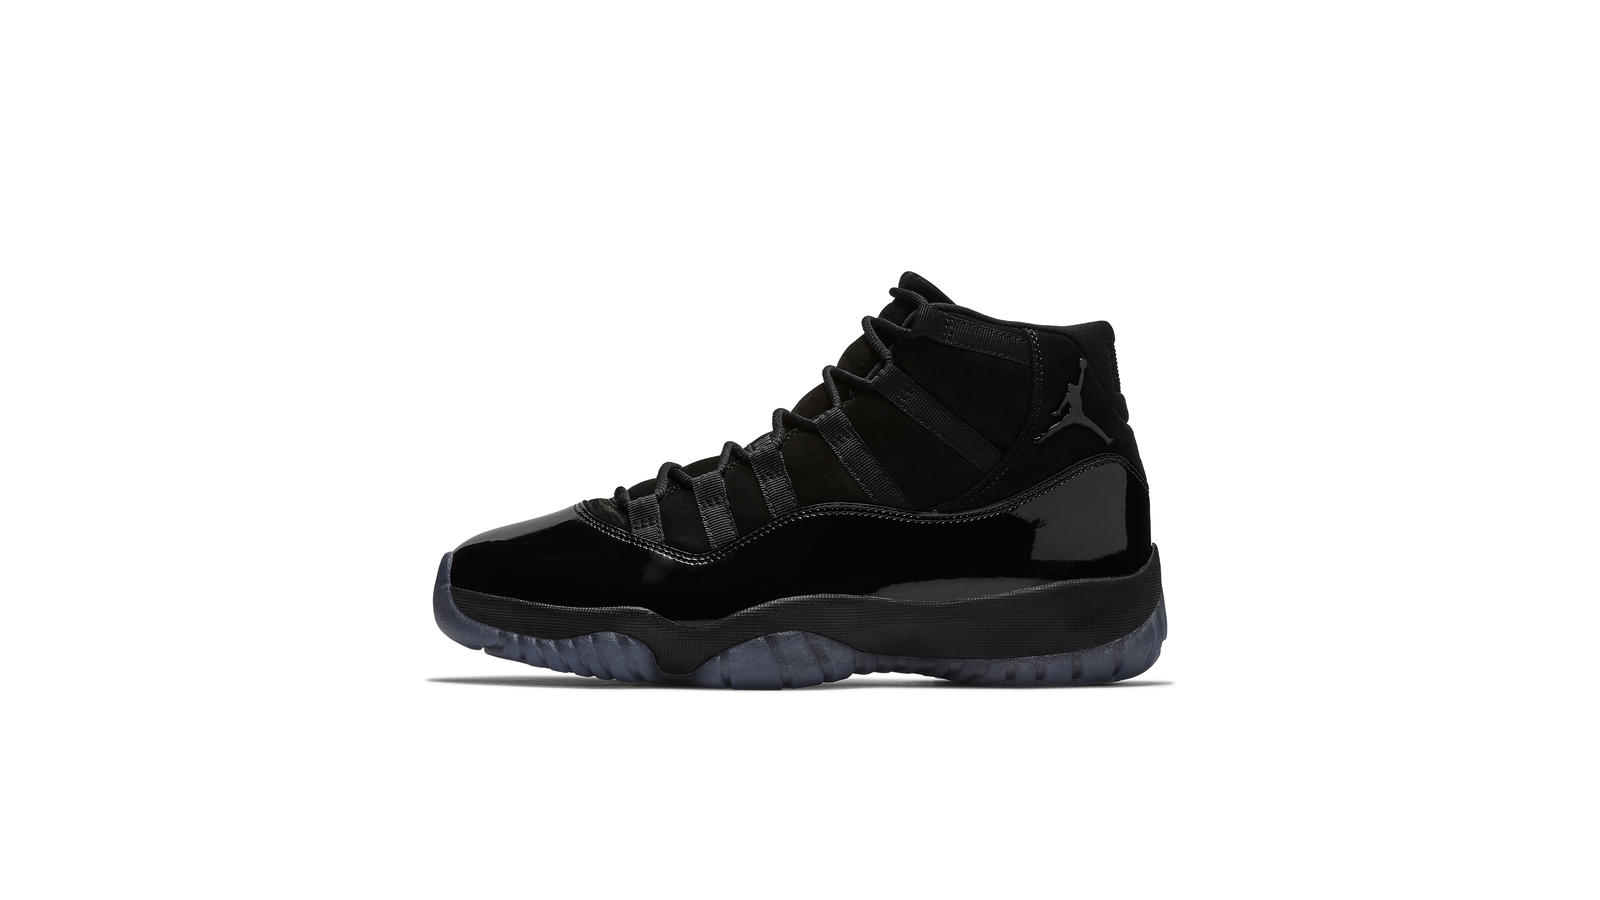 Air Jordan XI Cap and Gown 1